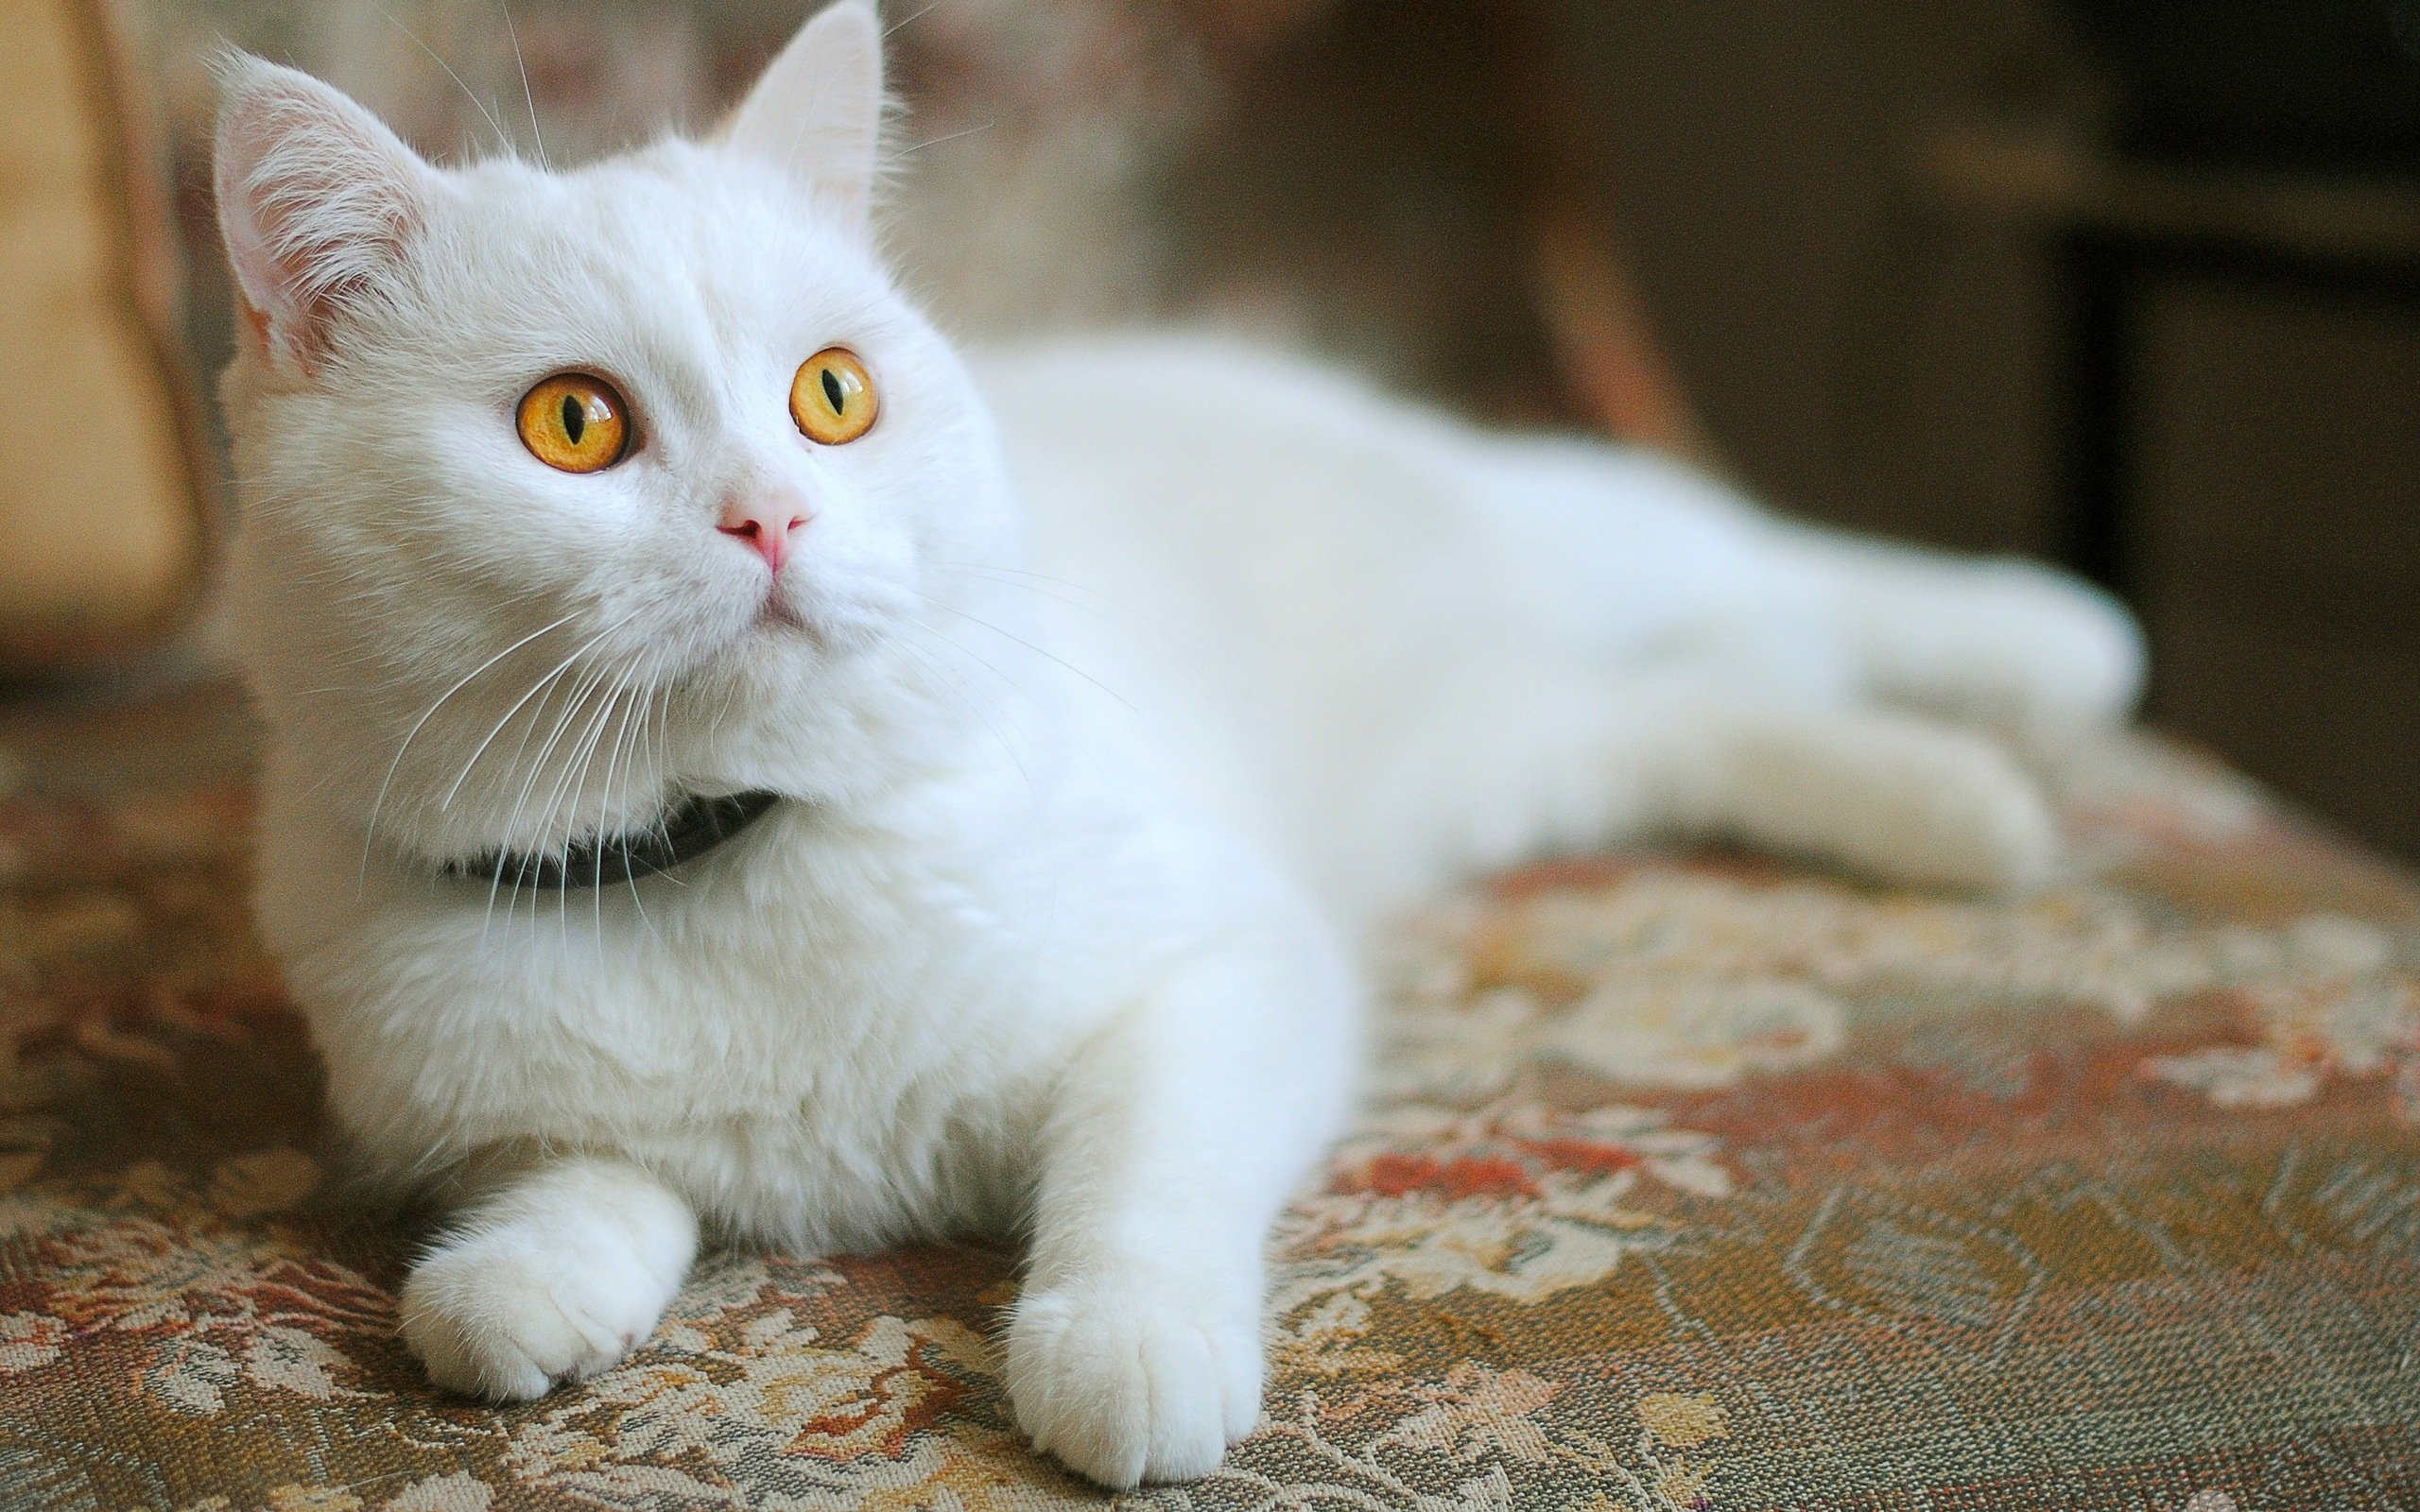 Common Infectious Diseases in Cats